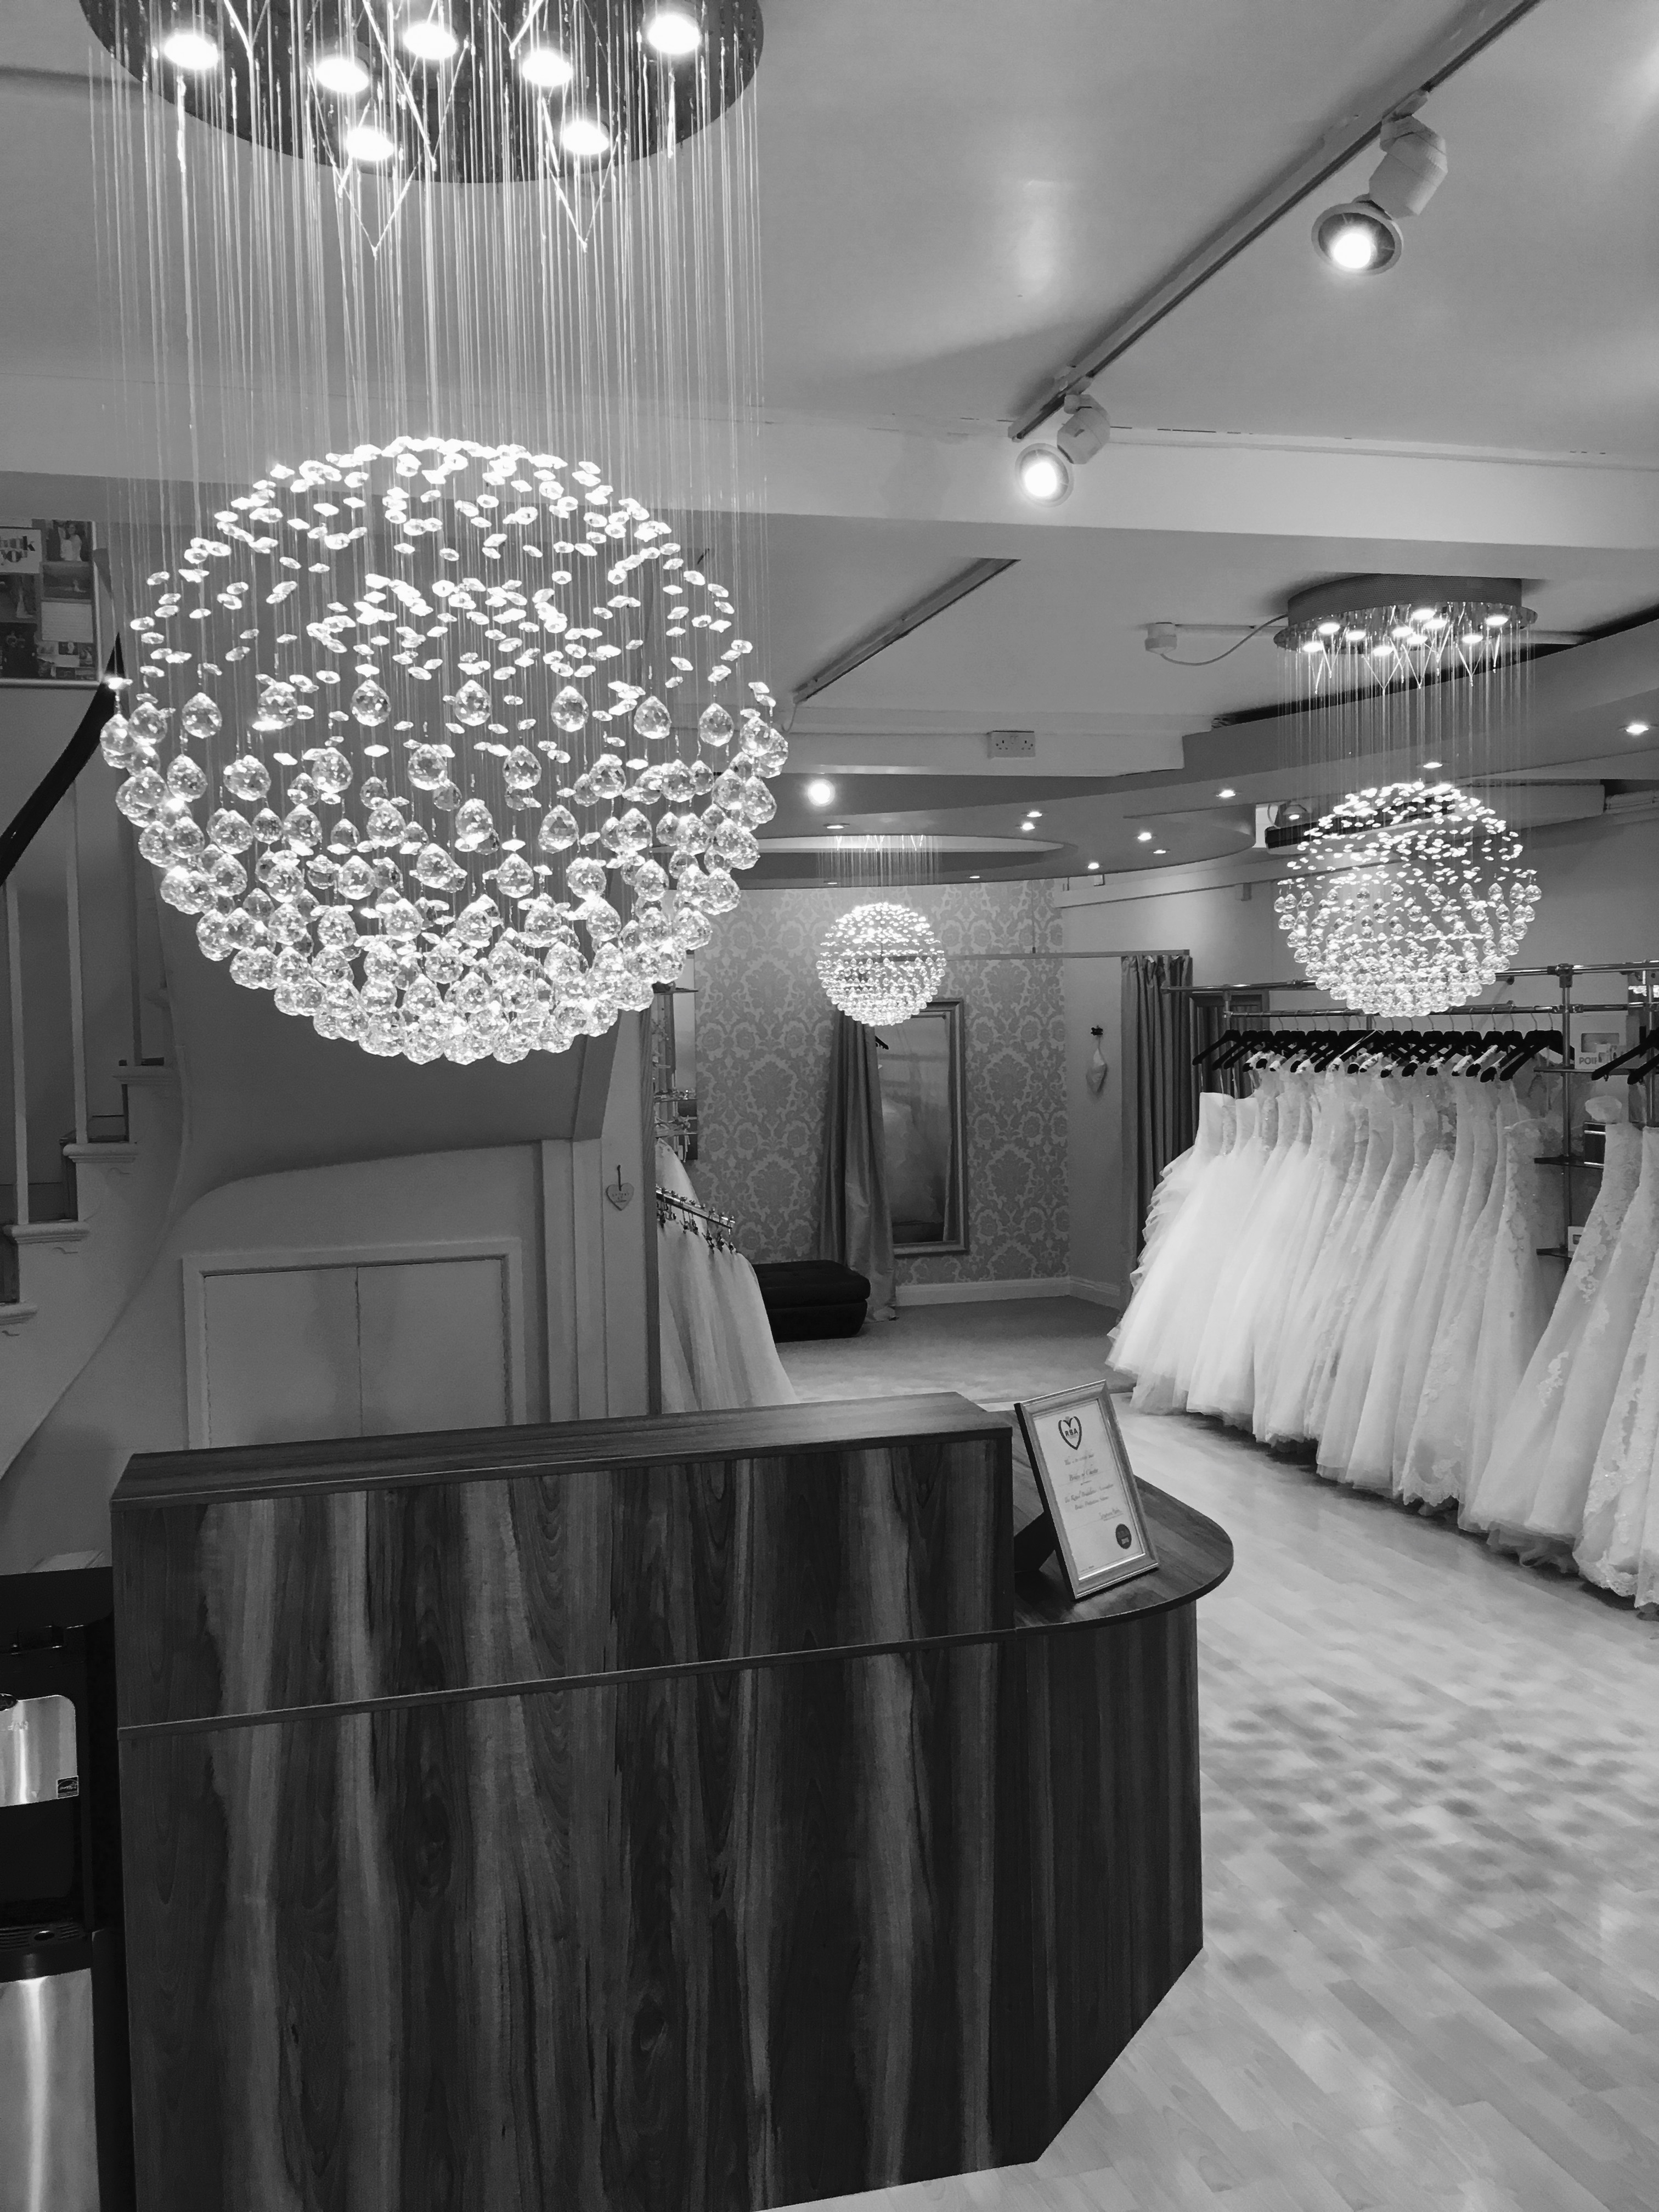 Our Bridal Boutique in Chester, Cheshire